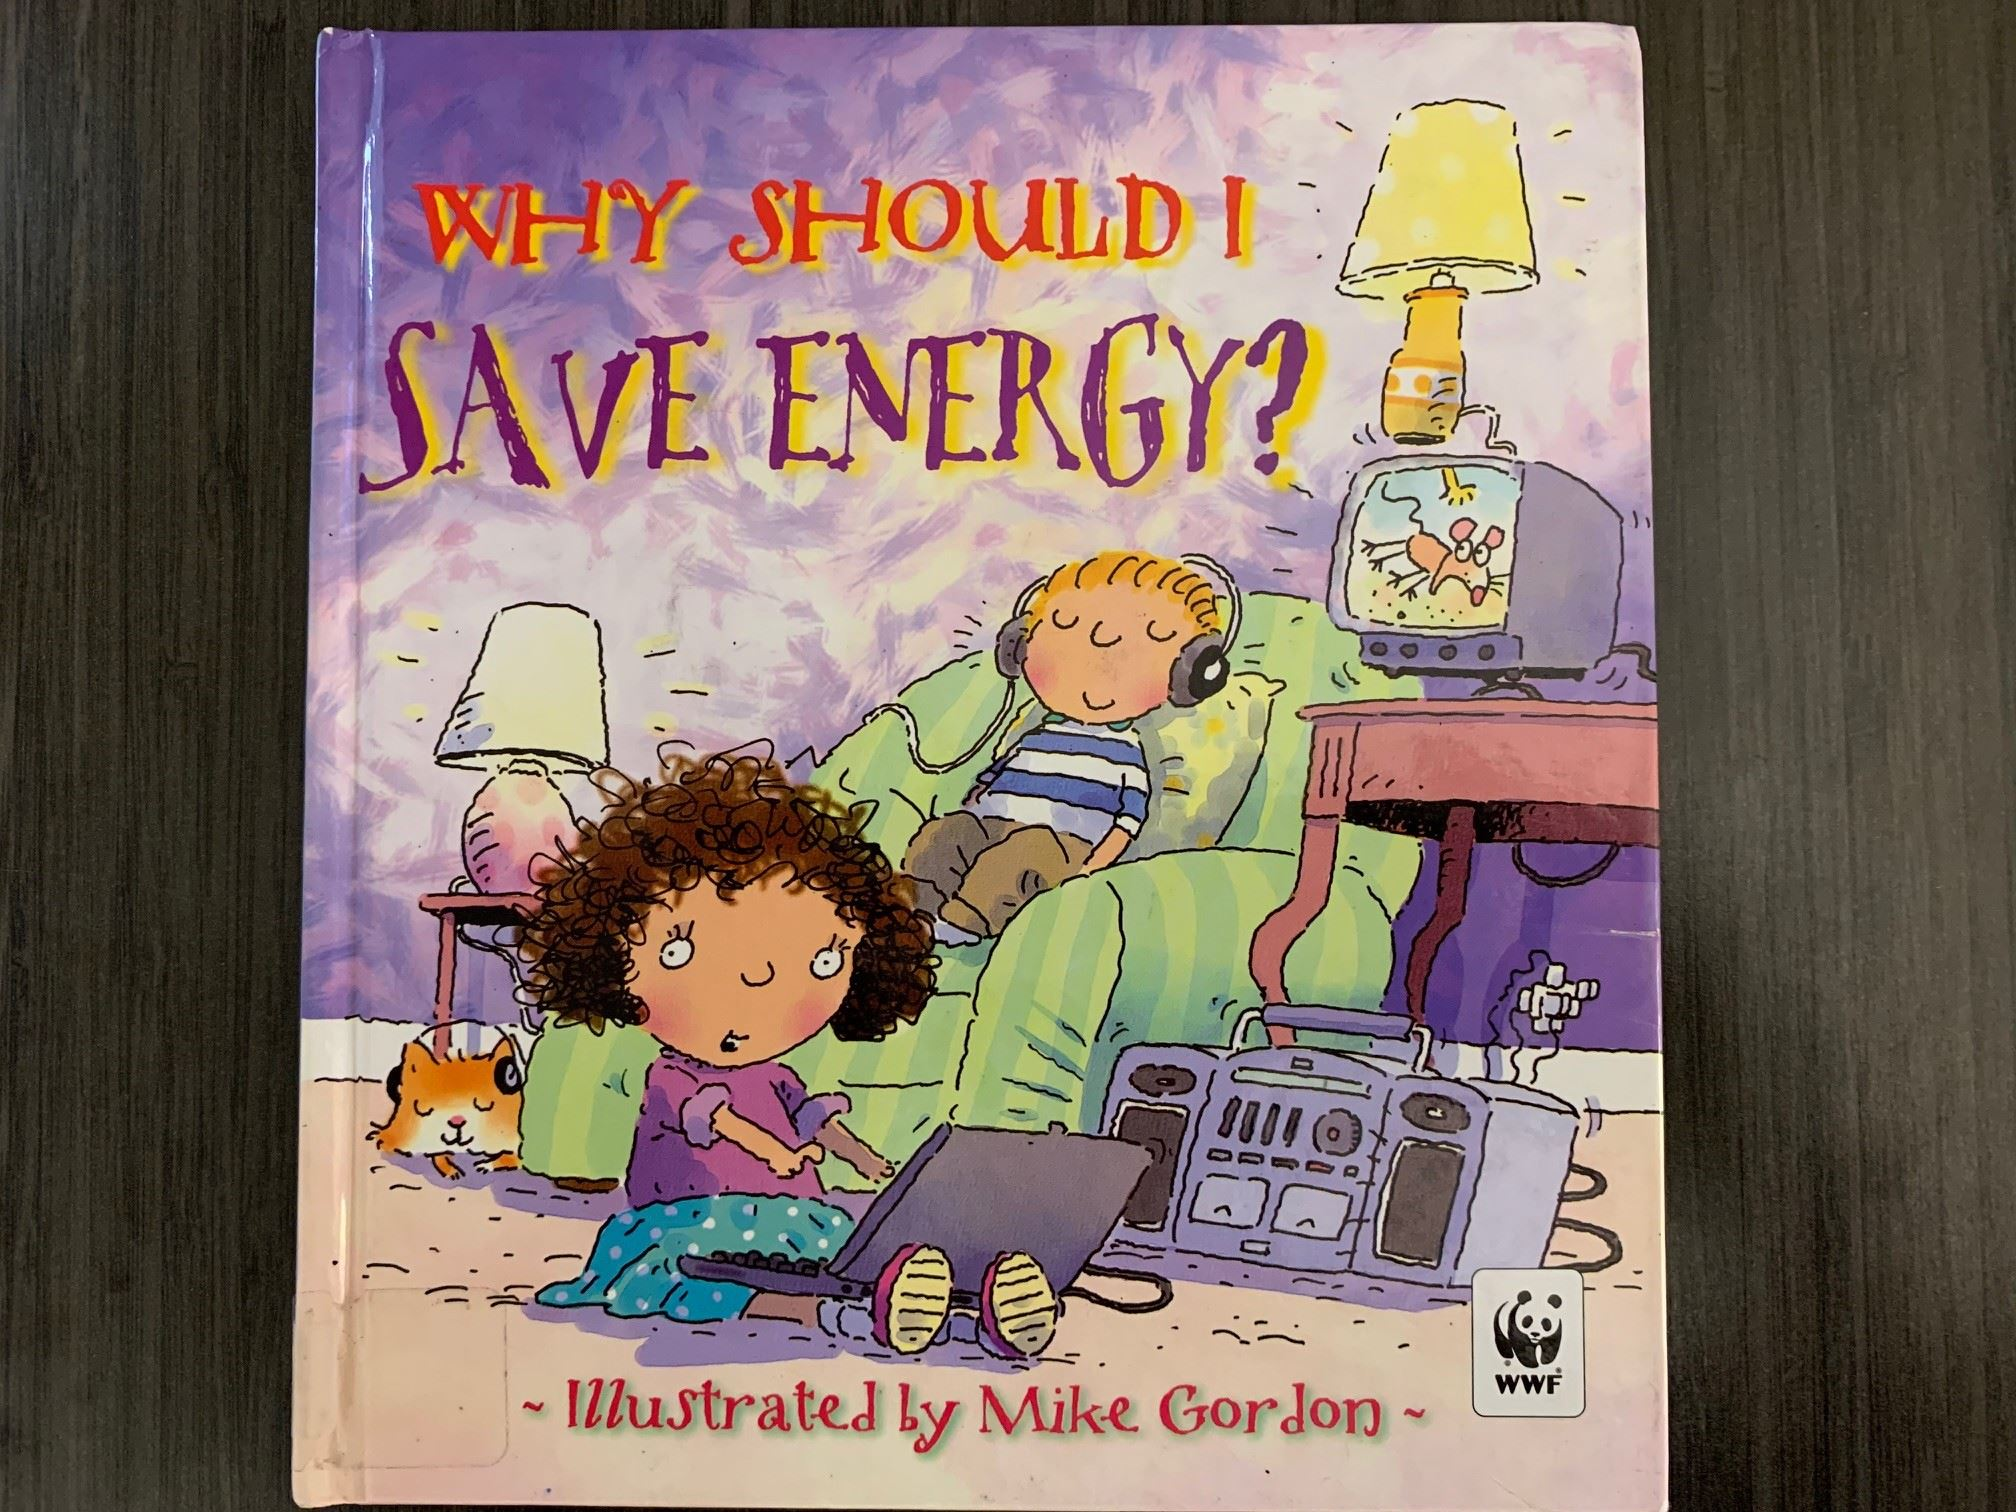 Book 41 - Why Should I Save Energy